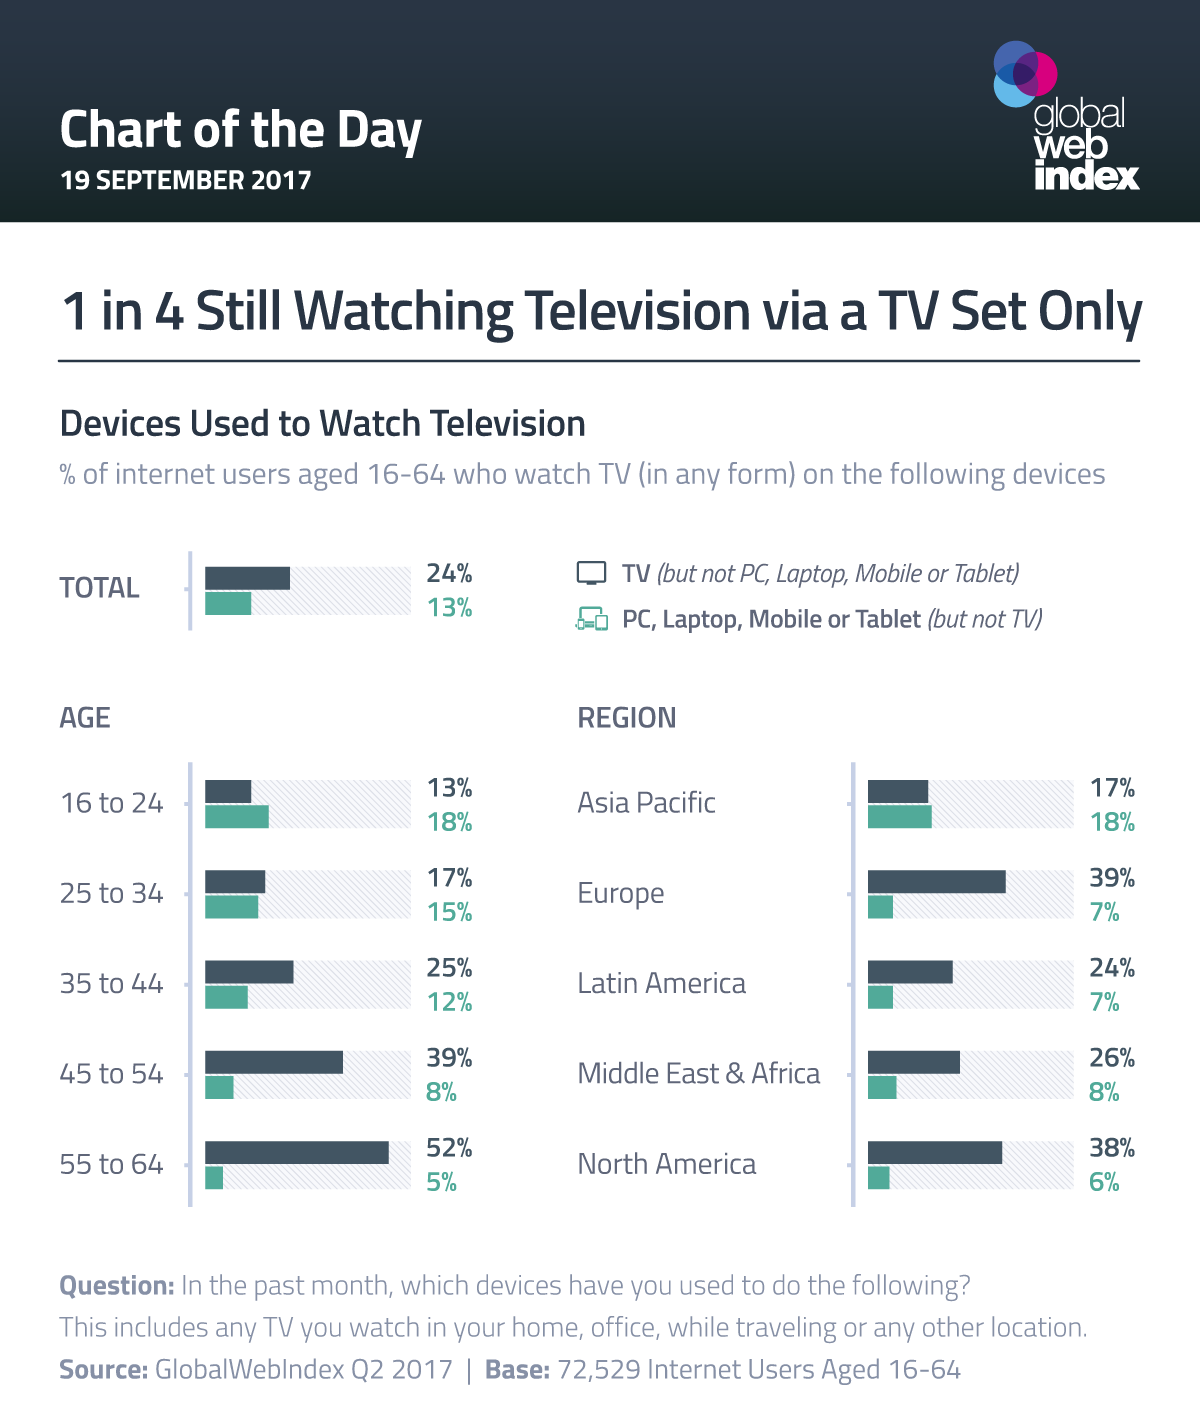 1 in 4 Still Watching Television via a TV Set Only